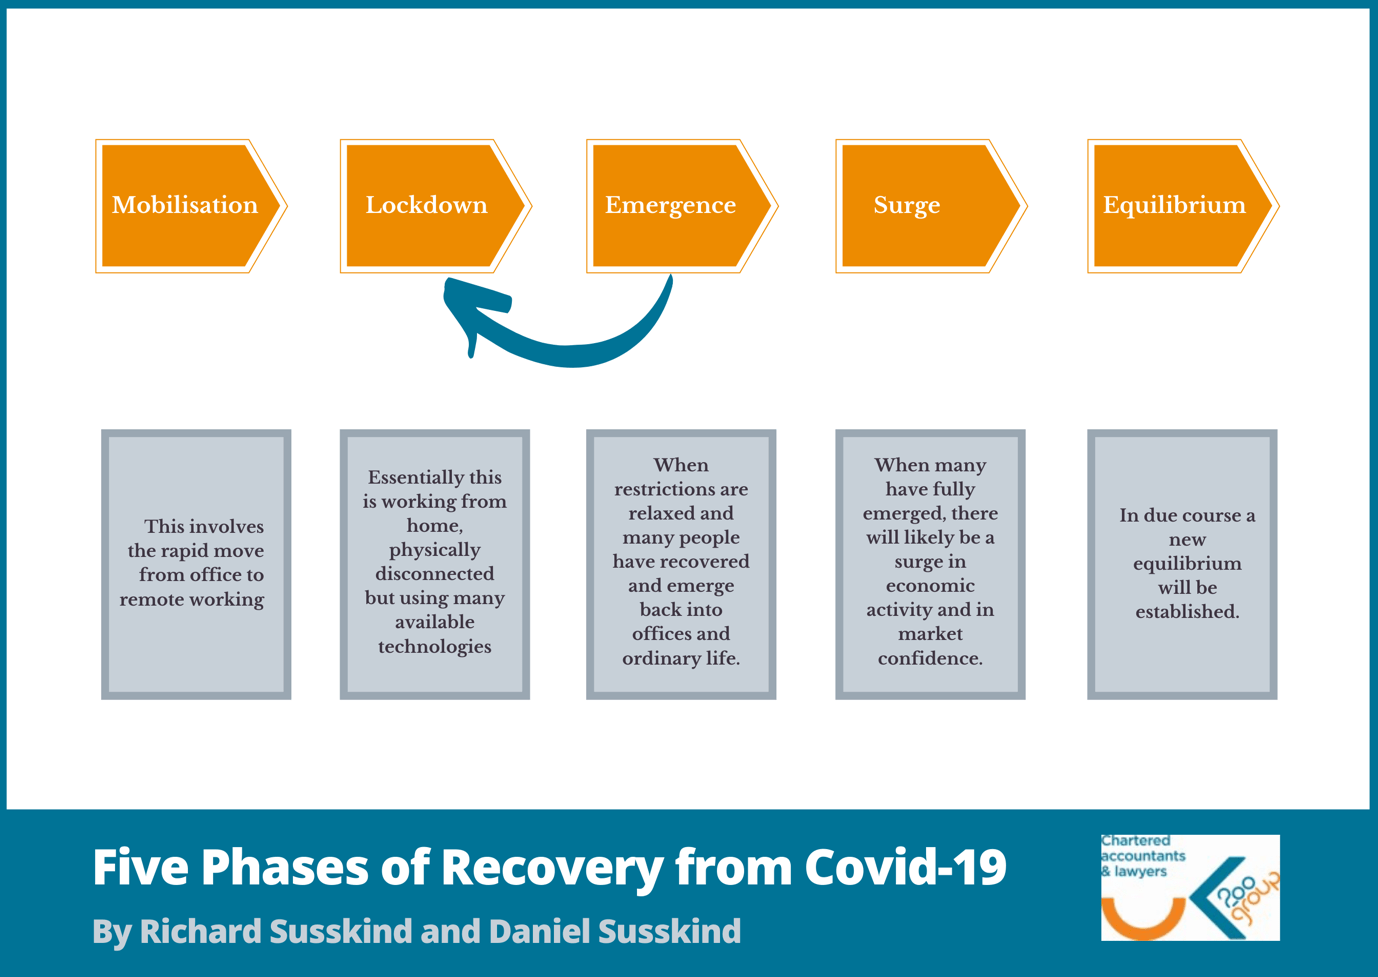 5 stages of Coronavirus recovery